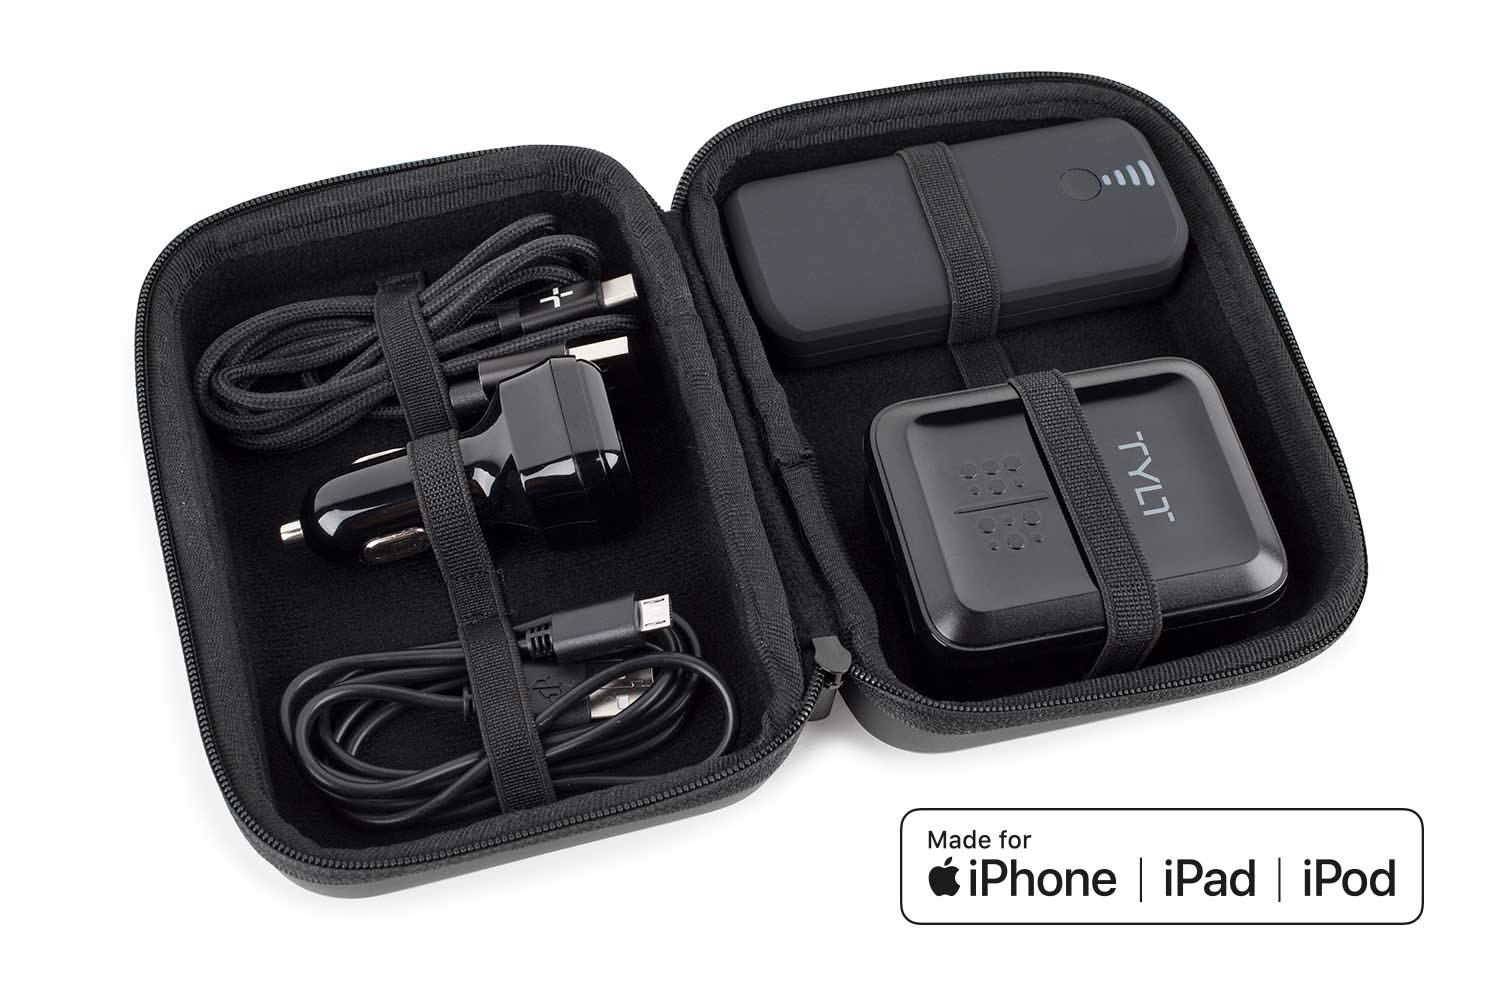 TYLT Power Essentials Battery Kit Includes 5200mAh Power Pack, 4.8 Amp Car Charger, 4.8 Amp Home Charger, Micro-USB Cable, and a Lightning (Apple MFi Certified) or USB-C Charging Cable (USB-C)